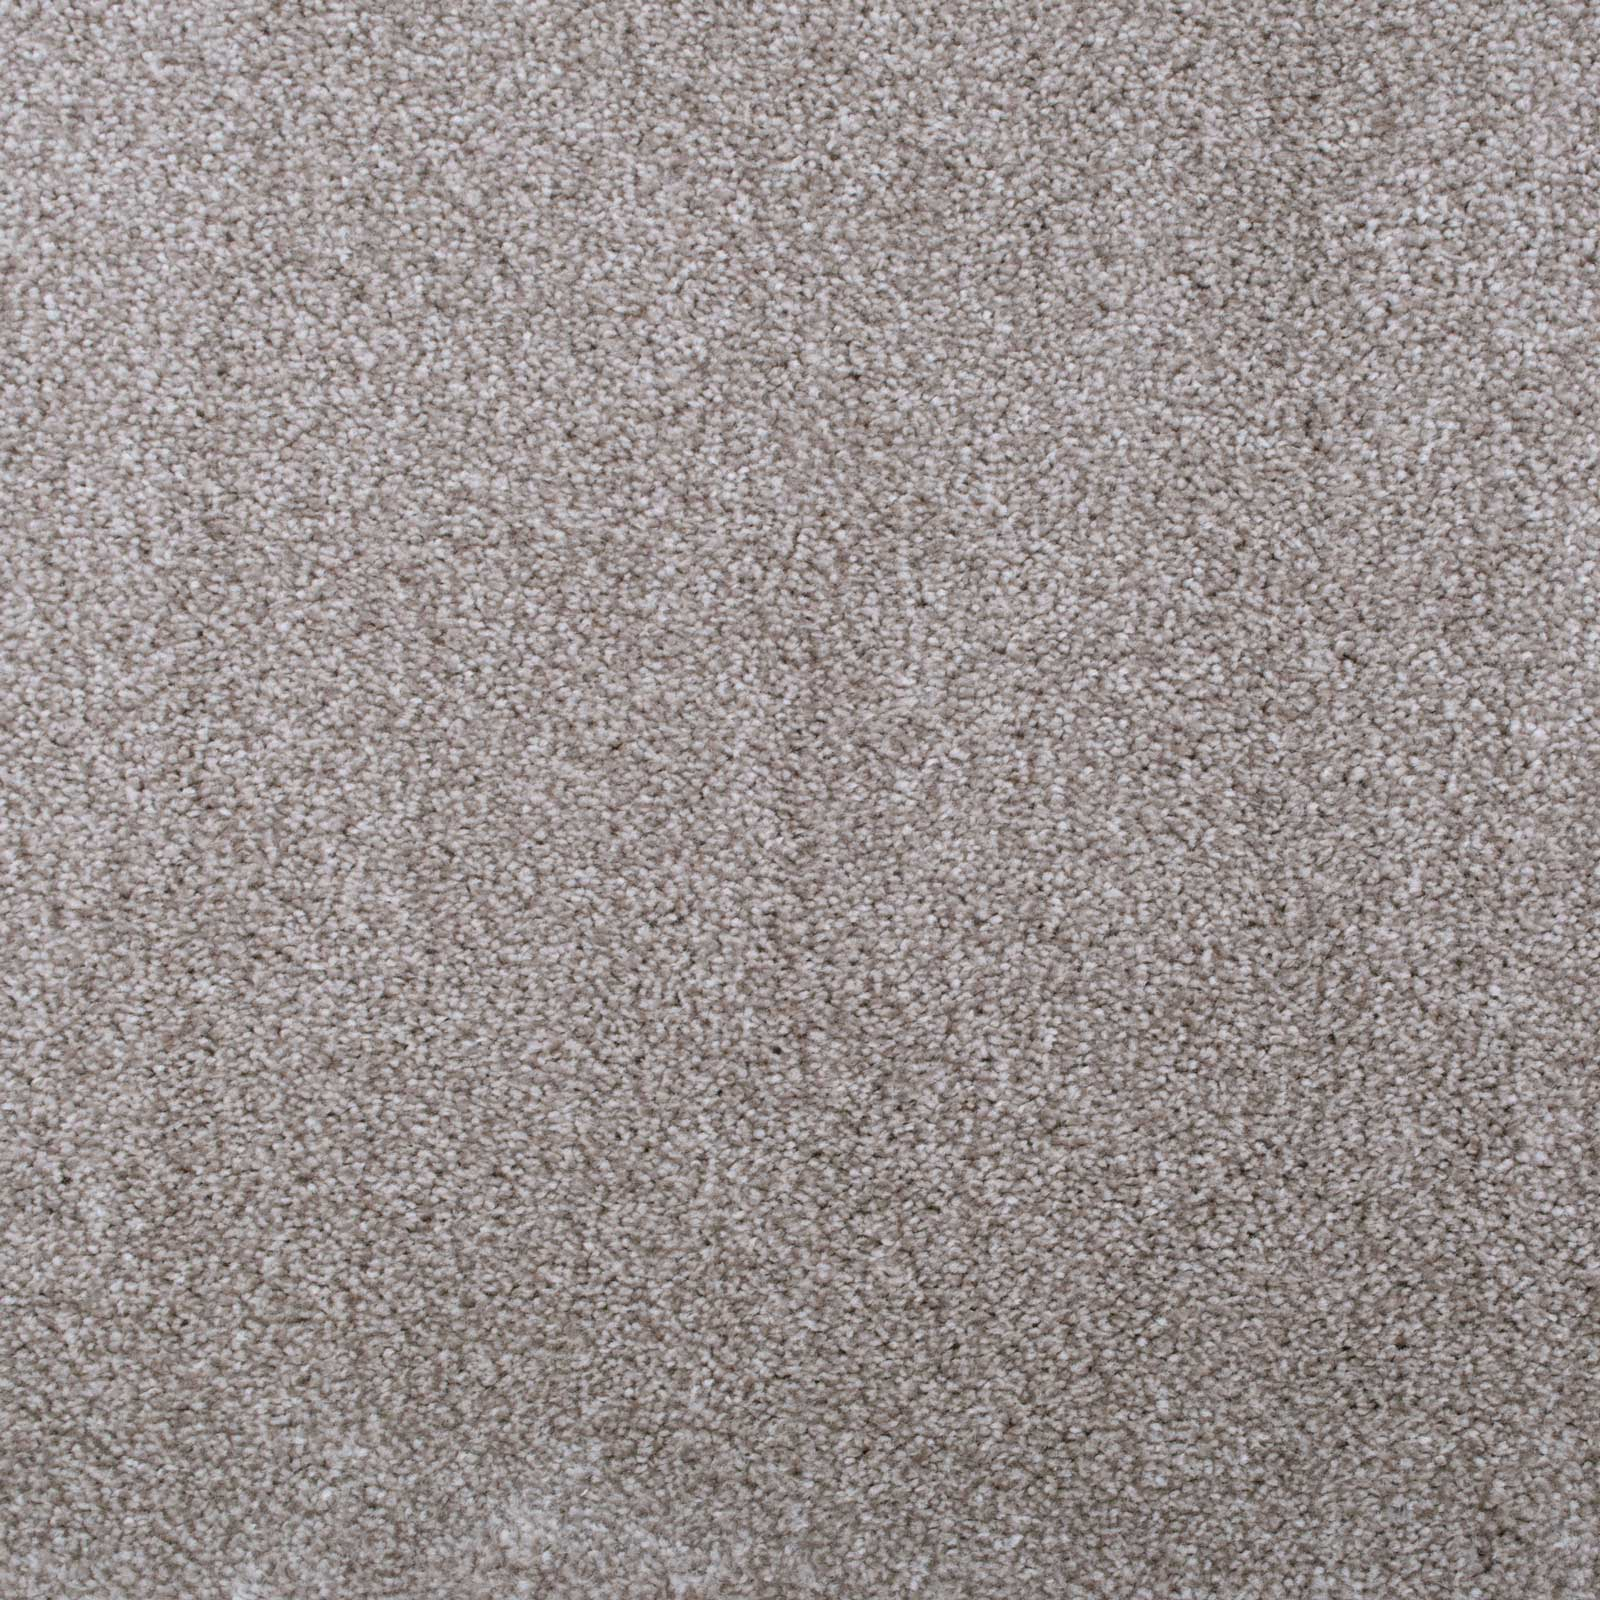 Cream & Dark Beige Supreme Saxony Carpet - Far